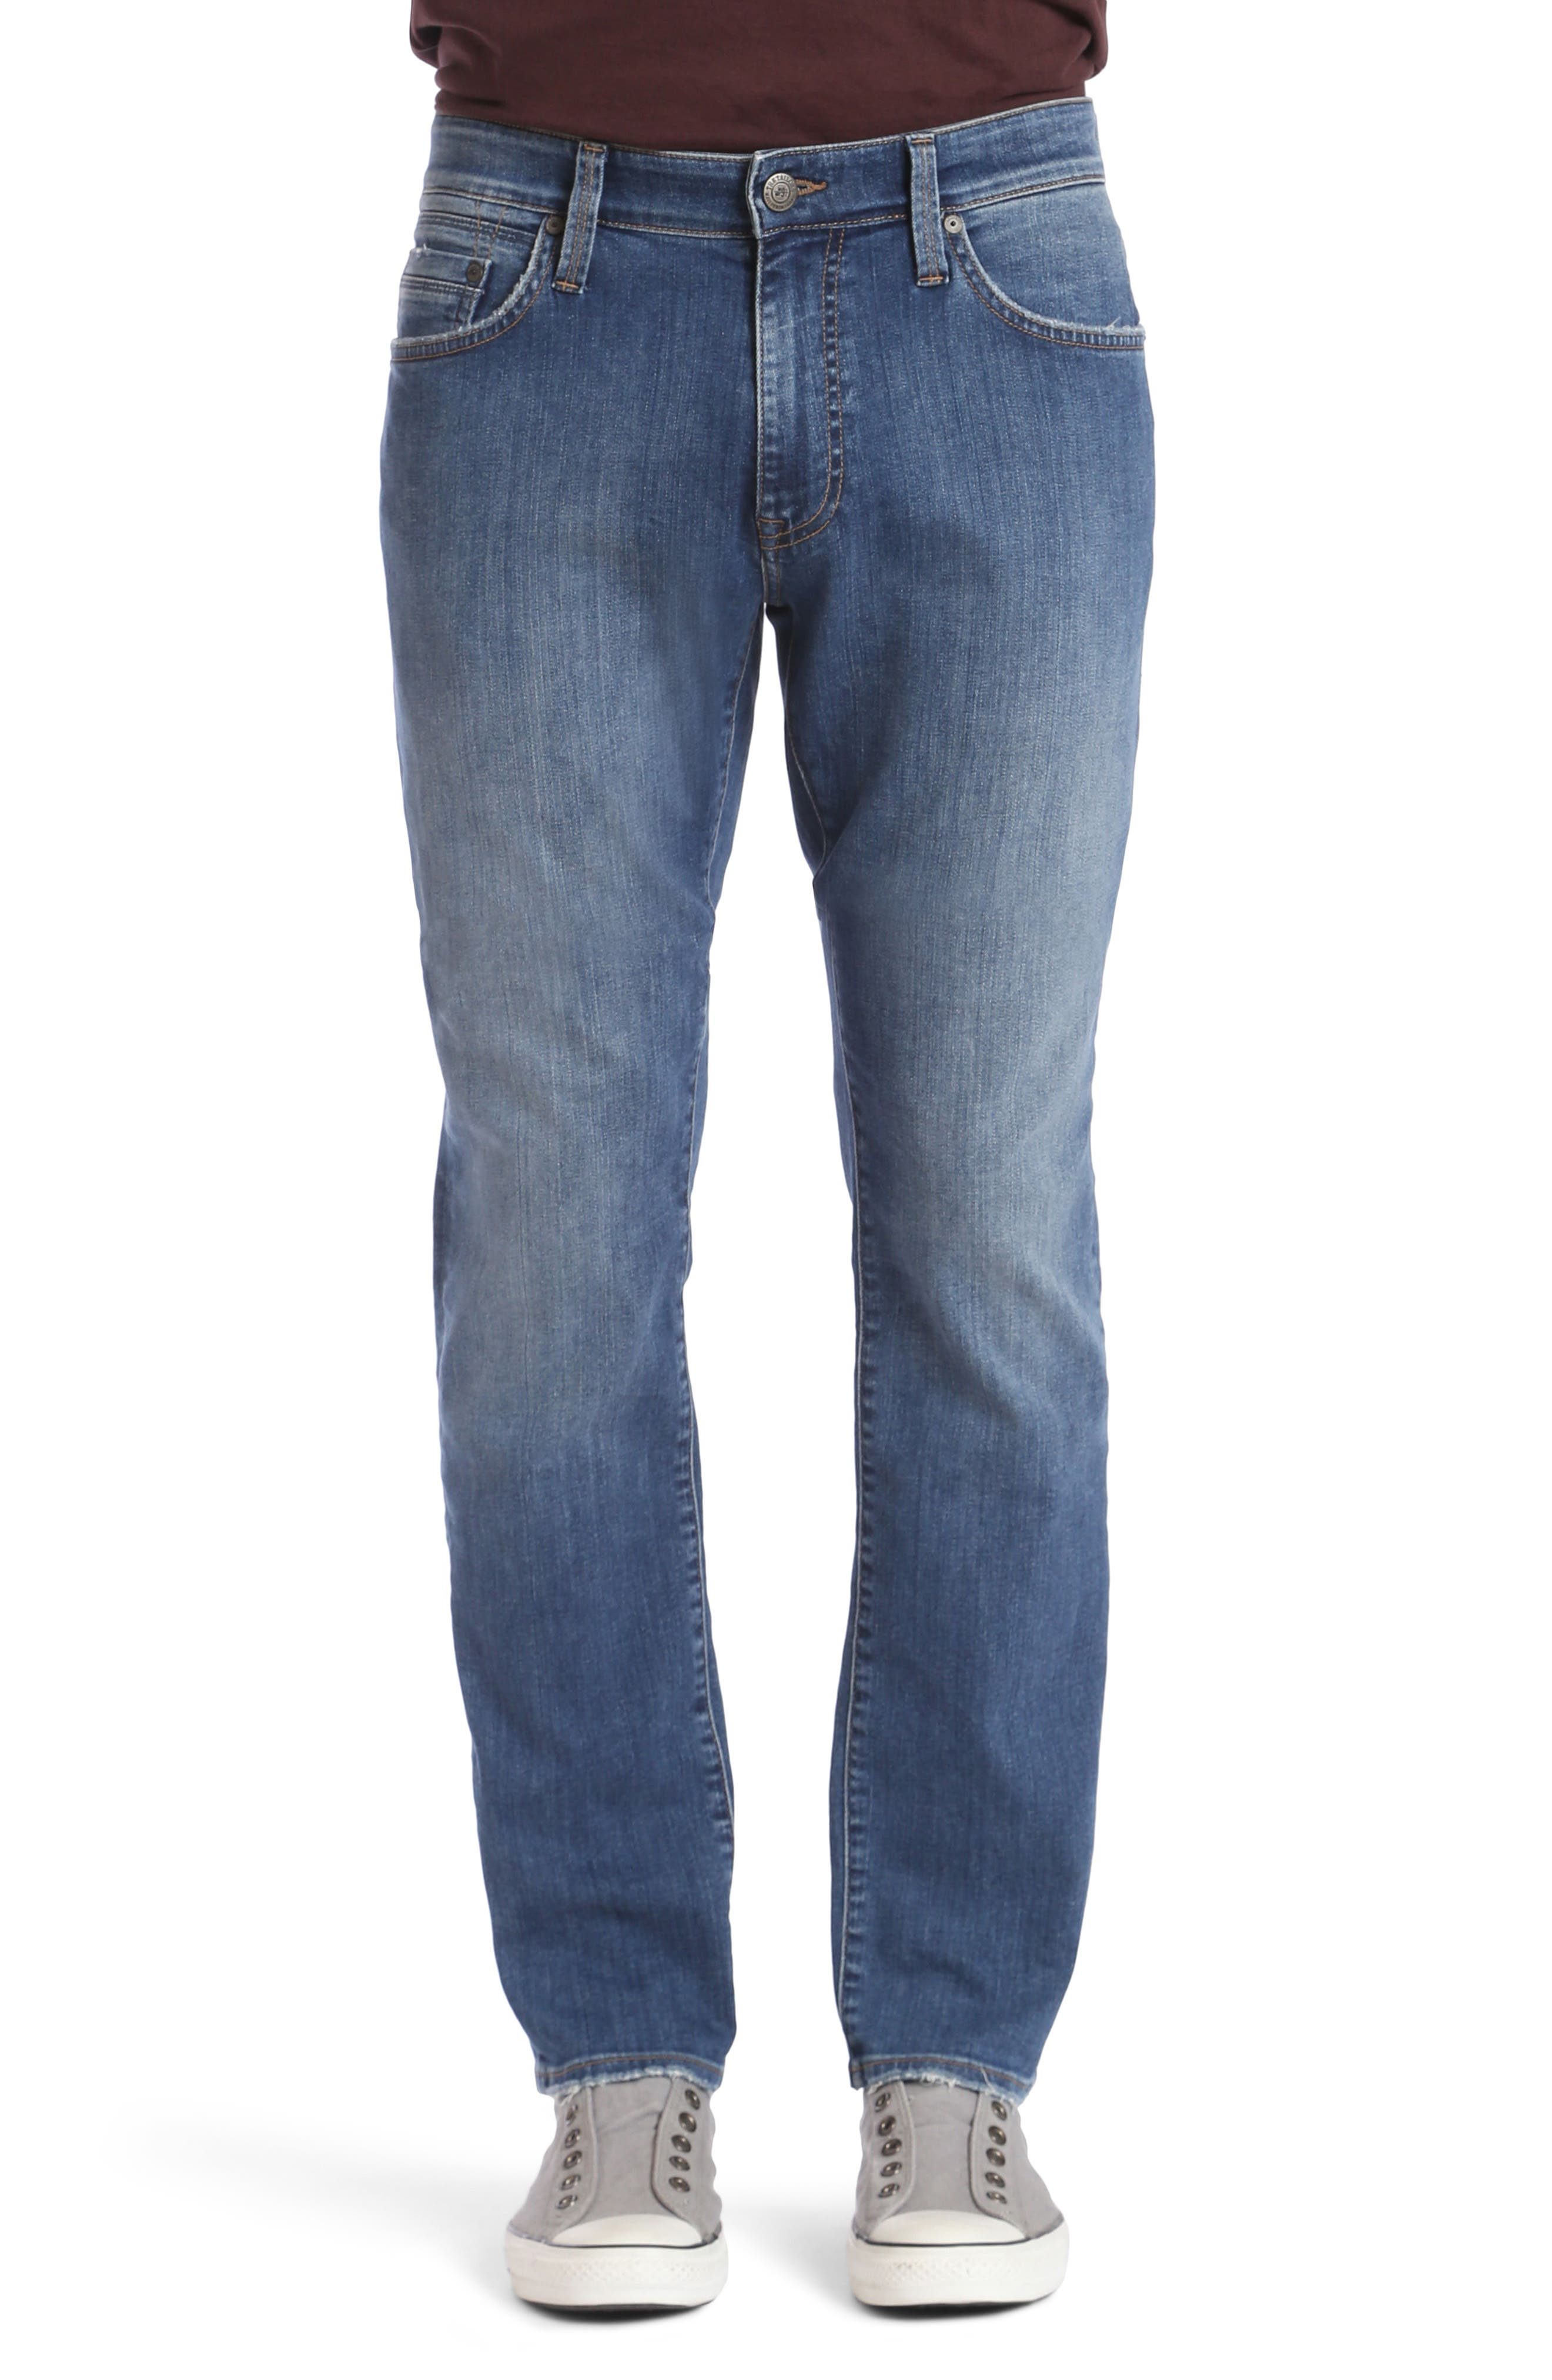 Alternate Image 1 Selected - Mavi Jeans Matt Relaxed Fit Jeans (Mid Clean Comfort)